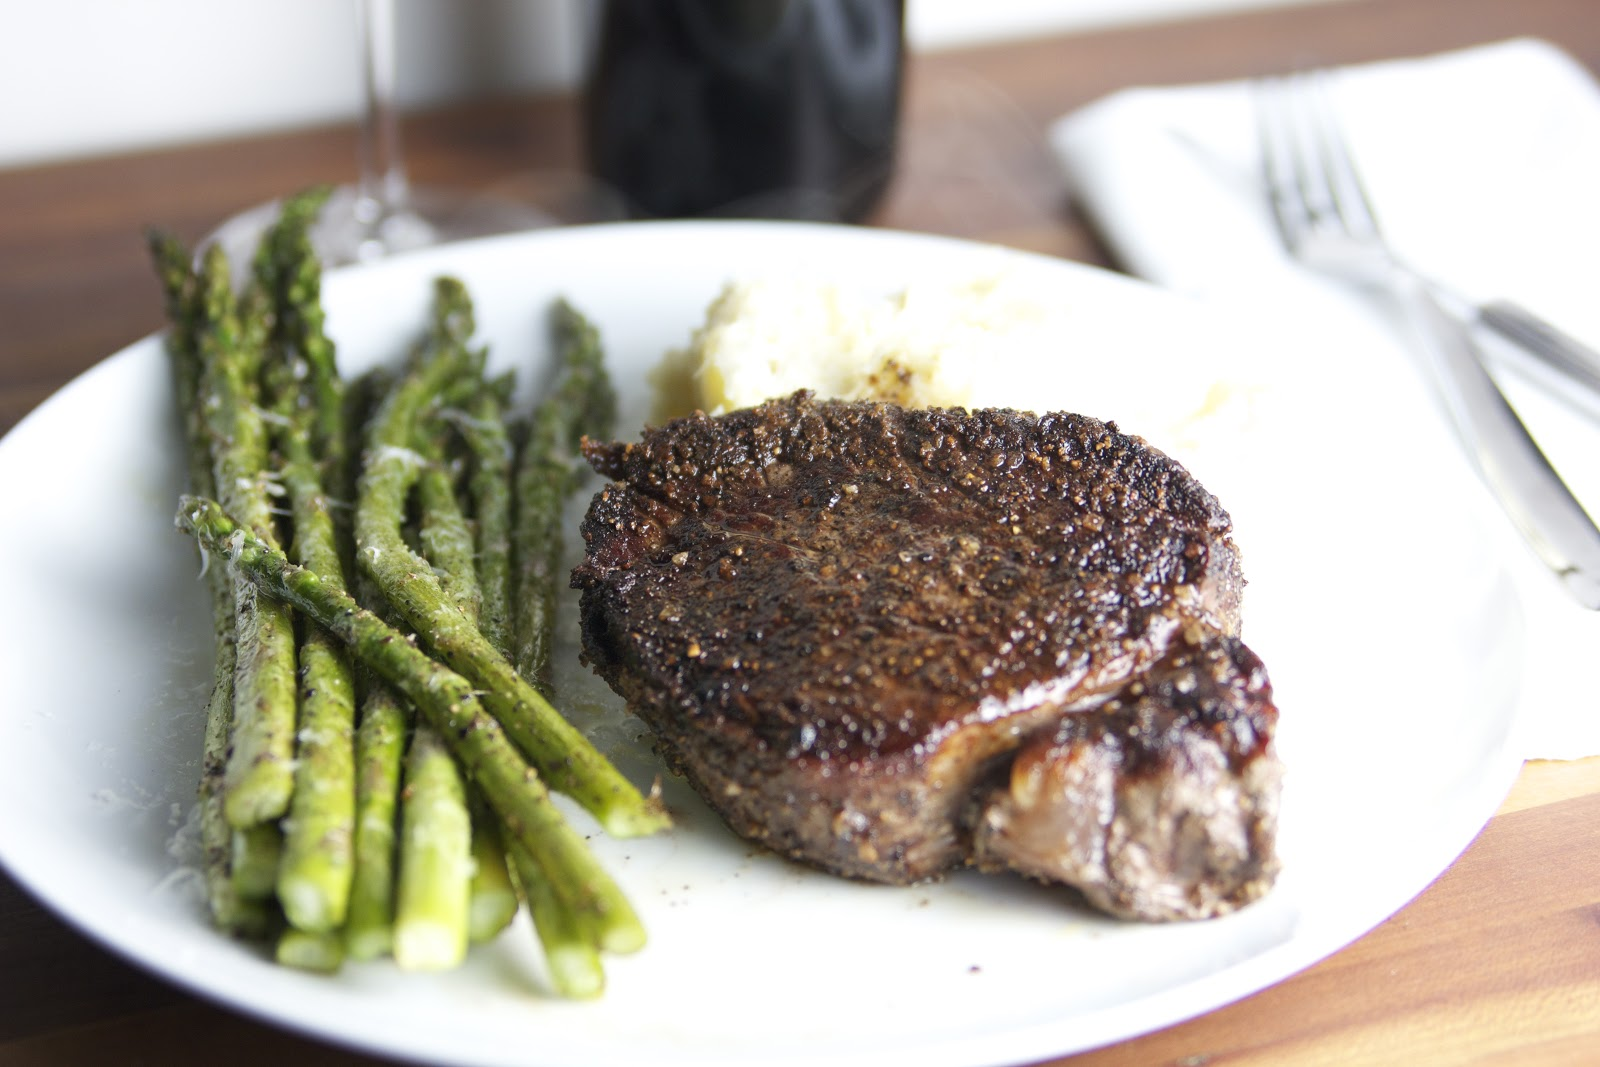 How to cook filet mignon in a cast iron skillet